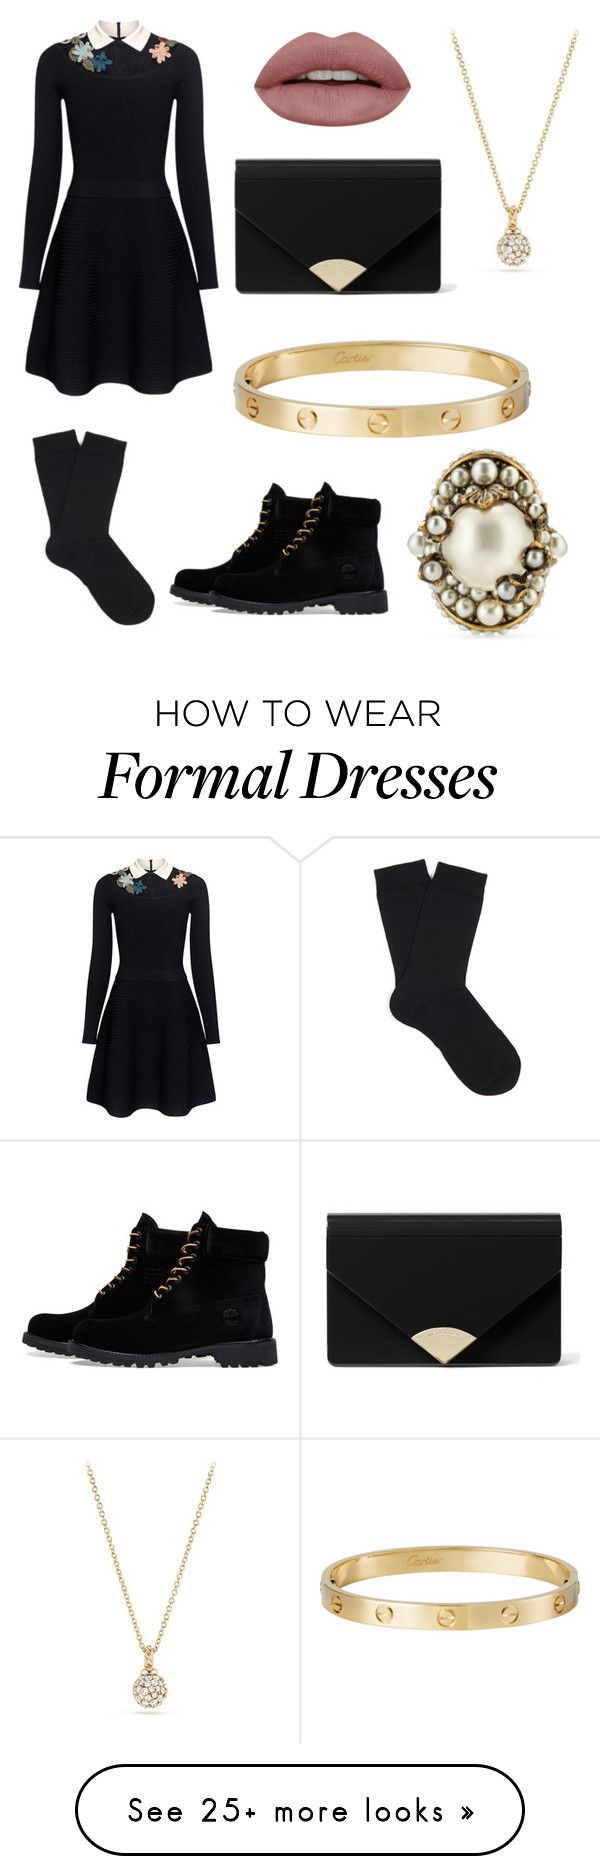 """Edens semi-formal outfit By-Eden"" by pinkj3w3l on Polyvore featuring RED Valentino, Falke, Timberland, MICHAEL Michael Kors, David Yurman, Cartier and Gucci"